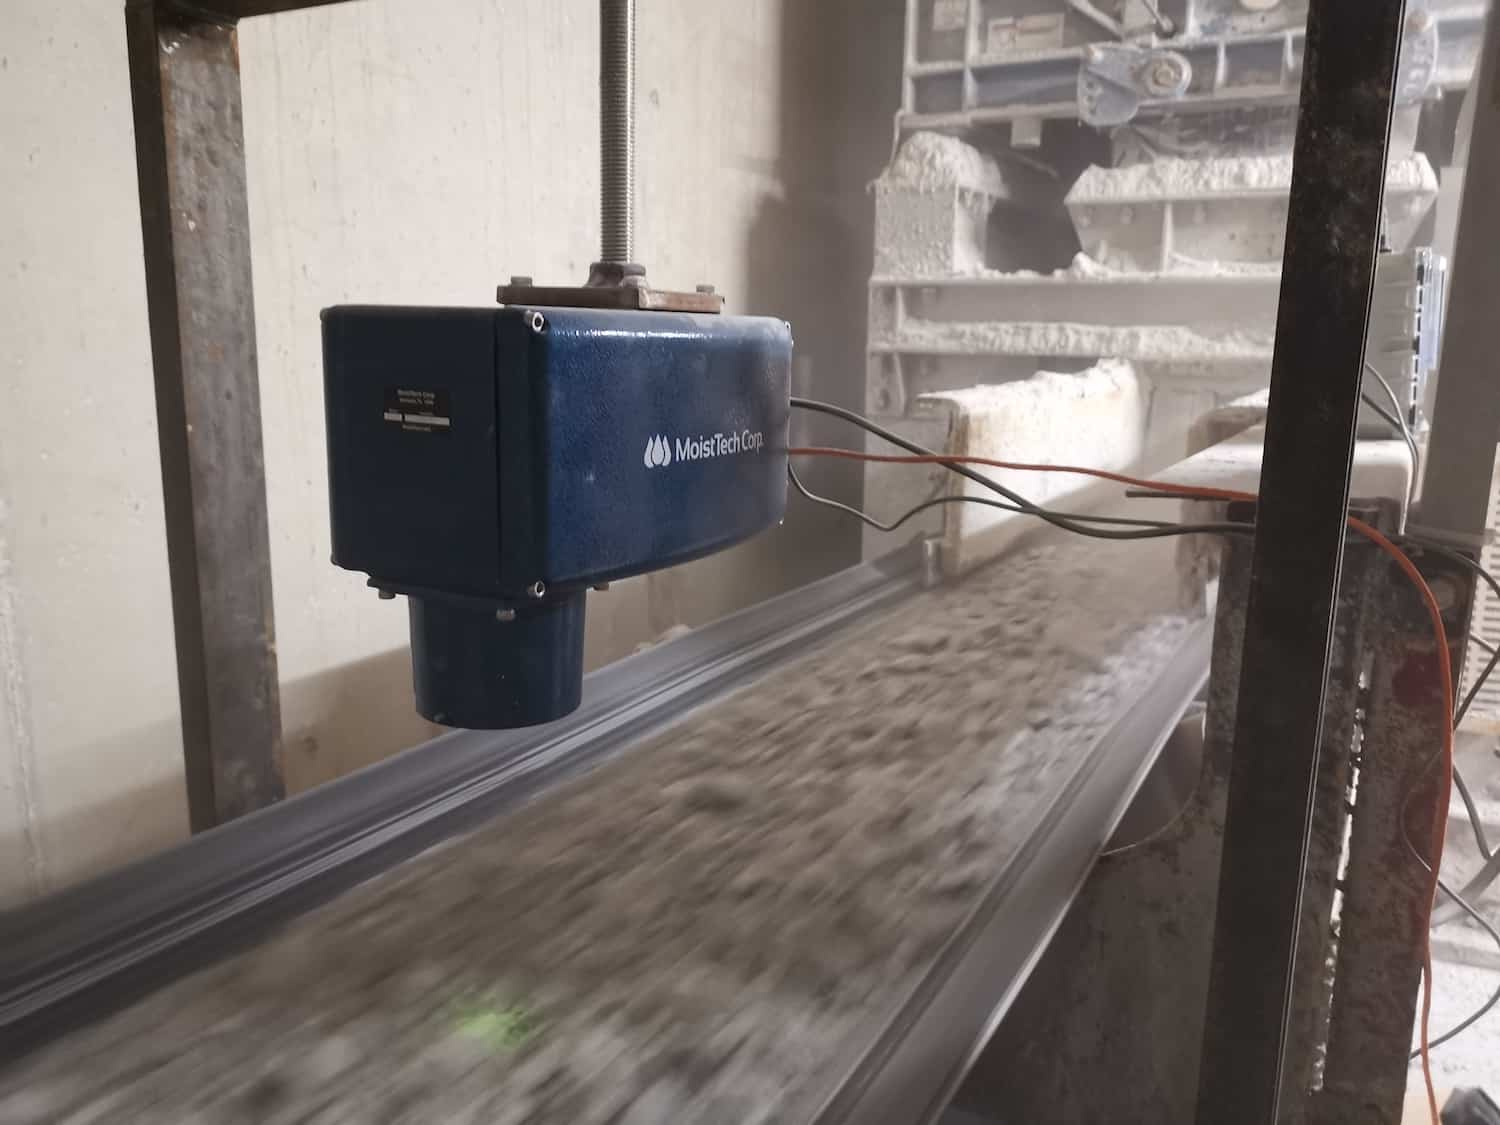 Moisture Measurement & Control Yields Immediate Results: Consistent Product Quality from Lab to Line